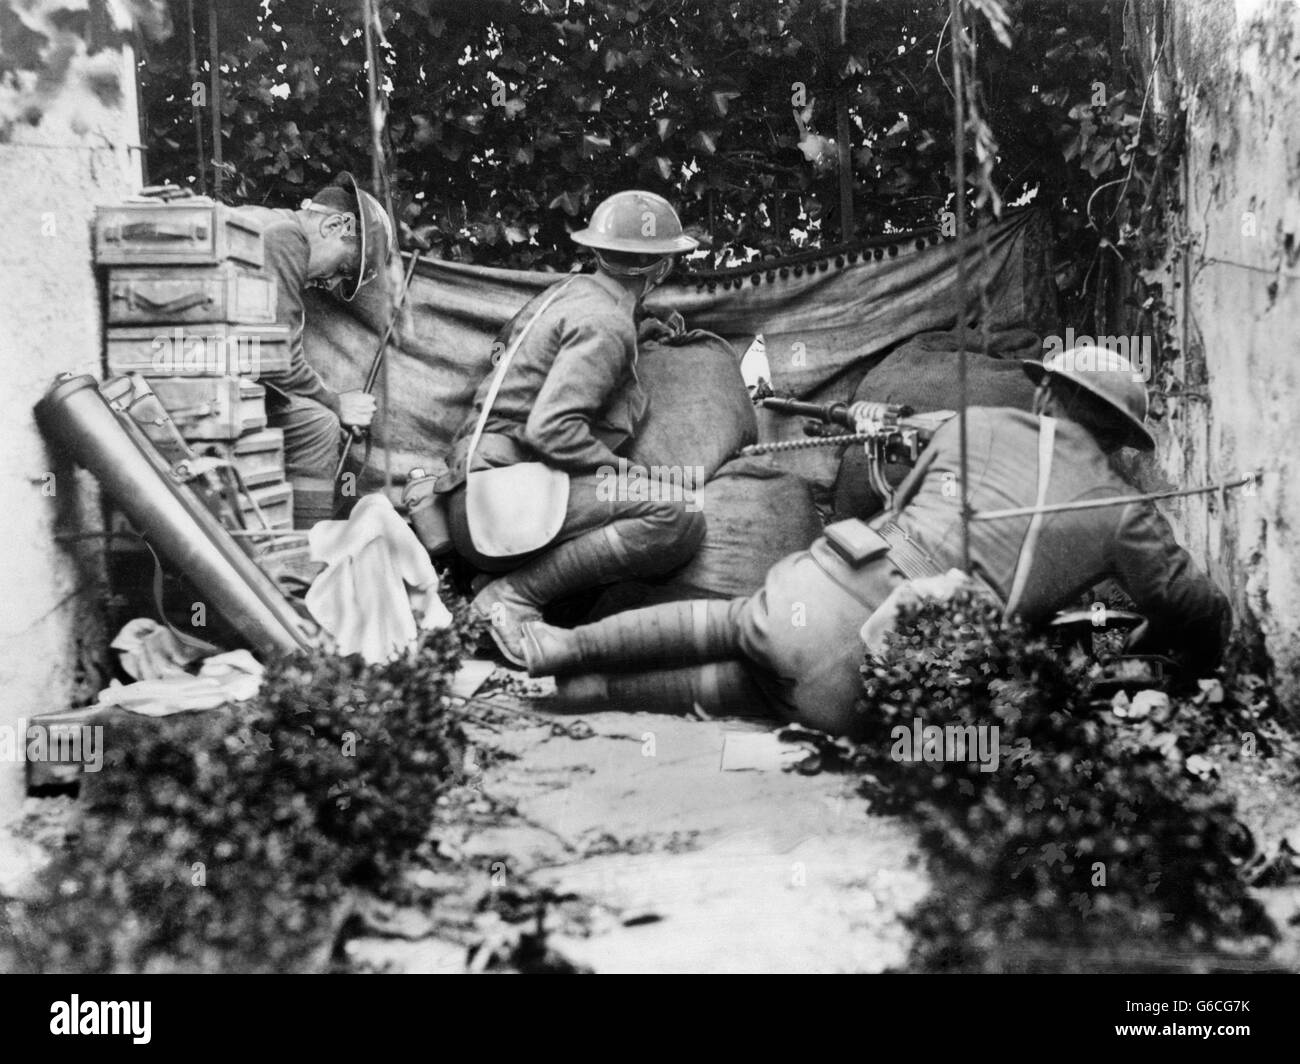 1910s JUNE 1 1918 AMERICAN GUNNERS COMPANY A 7TH MACHINE GUN BATTALION IN THE THICK OF BATTLE IN CITY OF CHATEAU - Stock Image